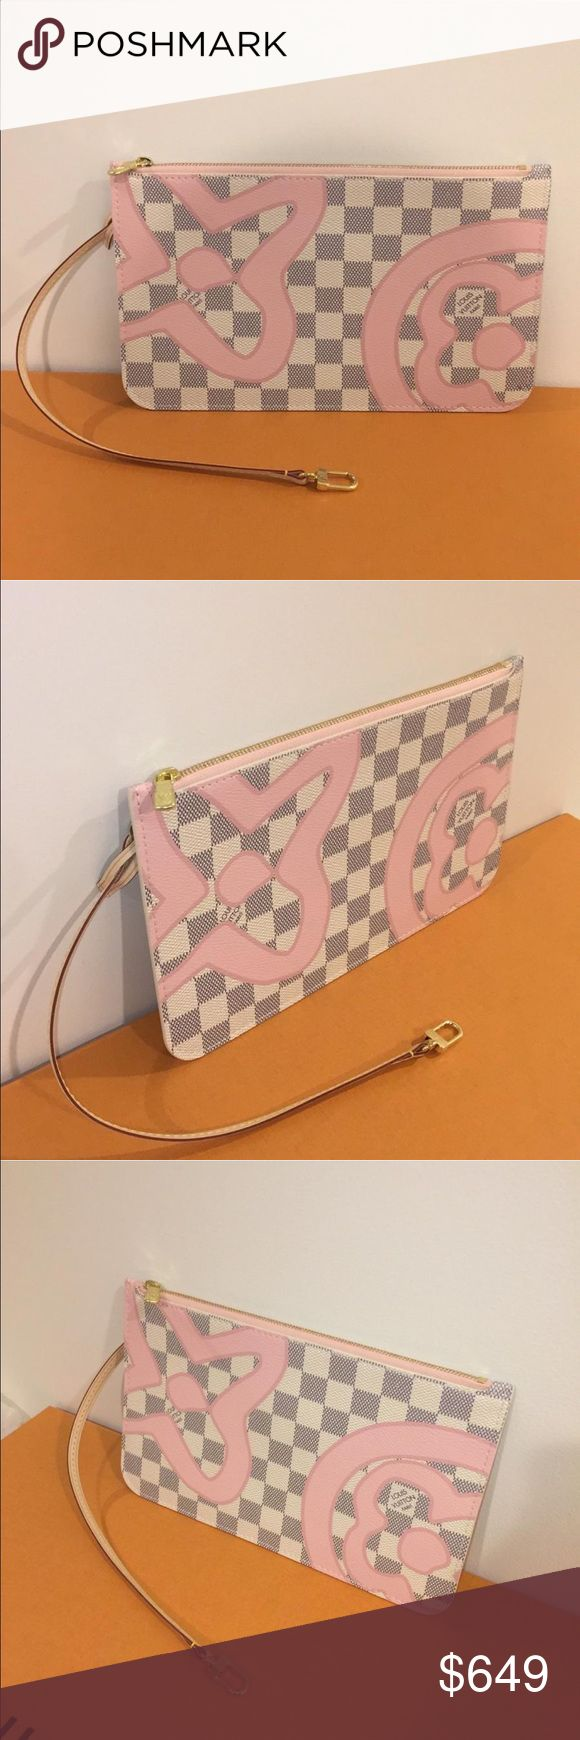 Louis Vuitton Tahitienne rose Neverfull clutch NEW Brand new Tahitienne clutch. Guaranteed Authentic! Clutch only, no box or dust bag. Louis Vuitton Bags